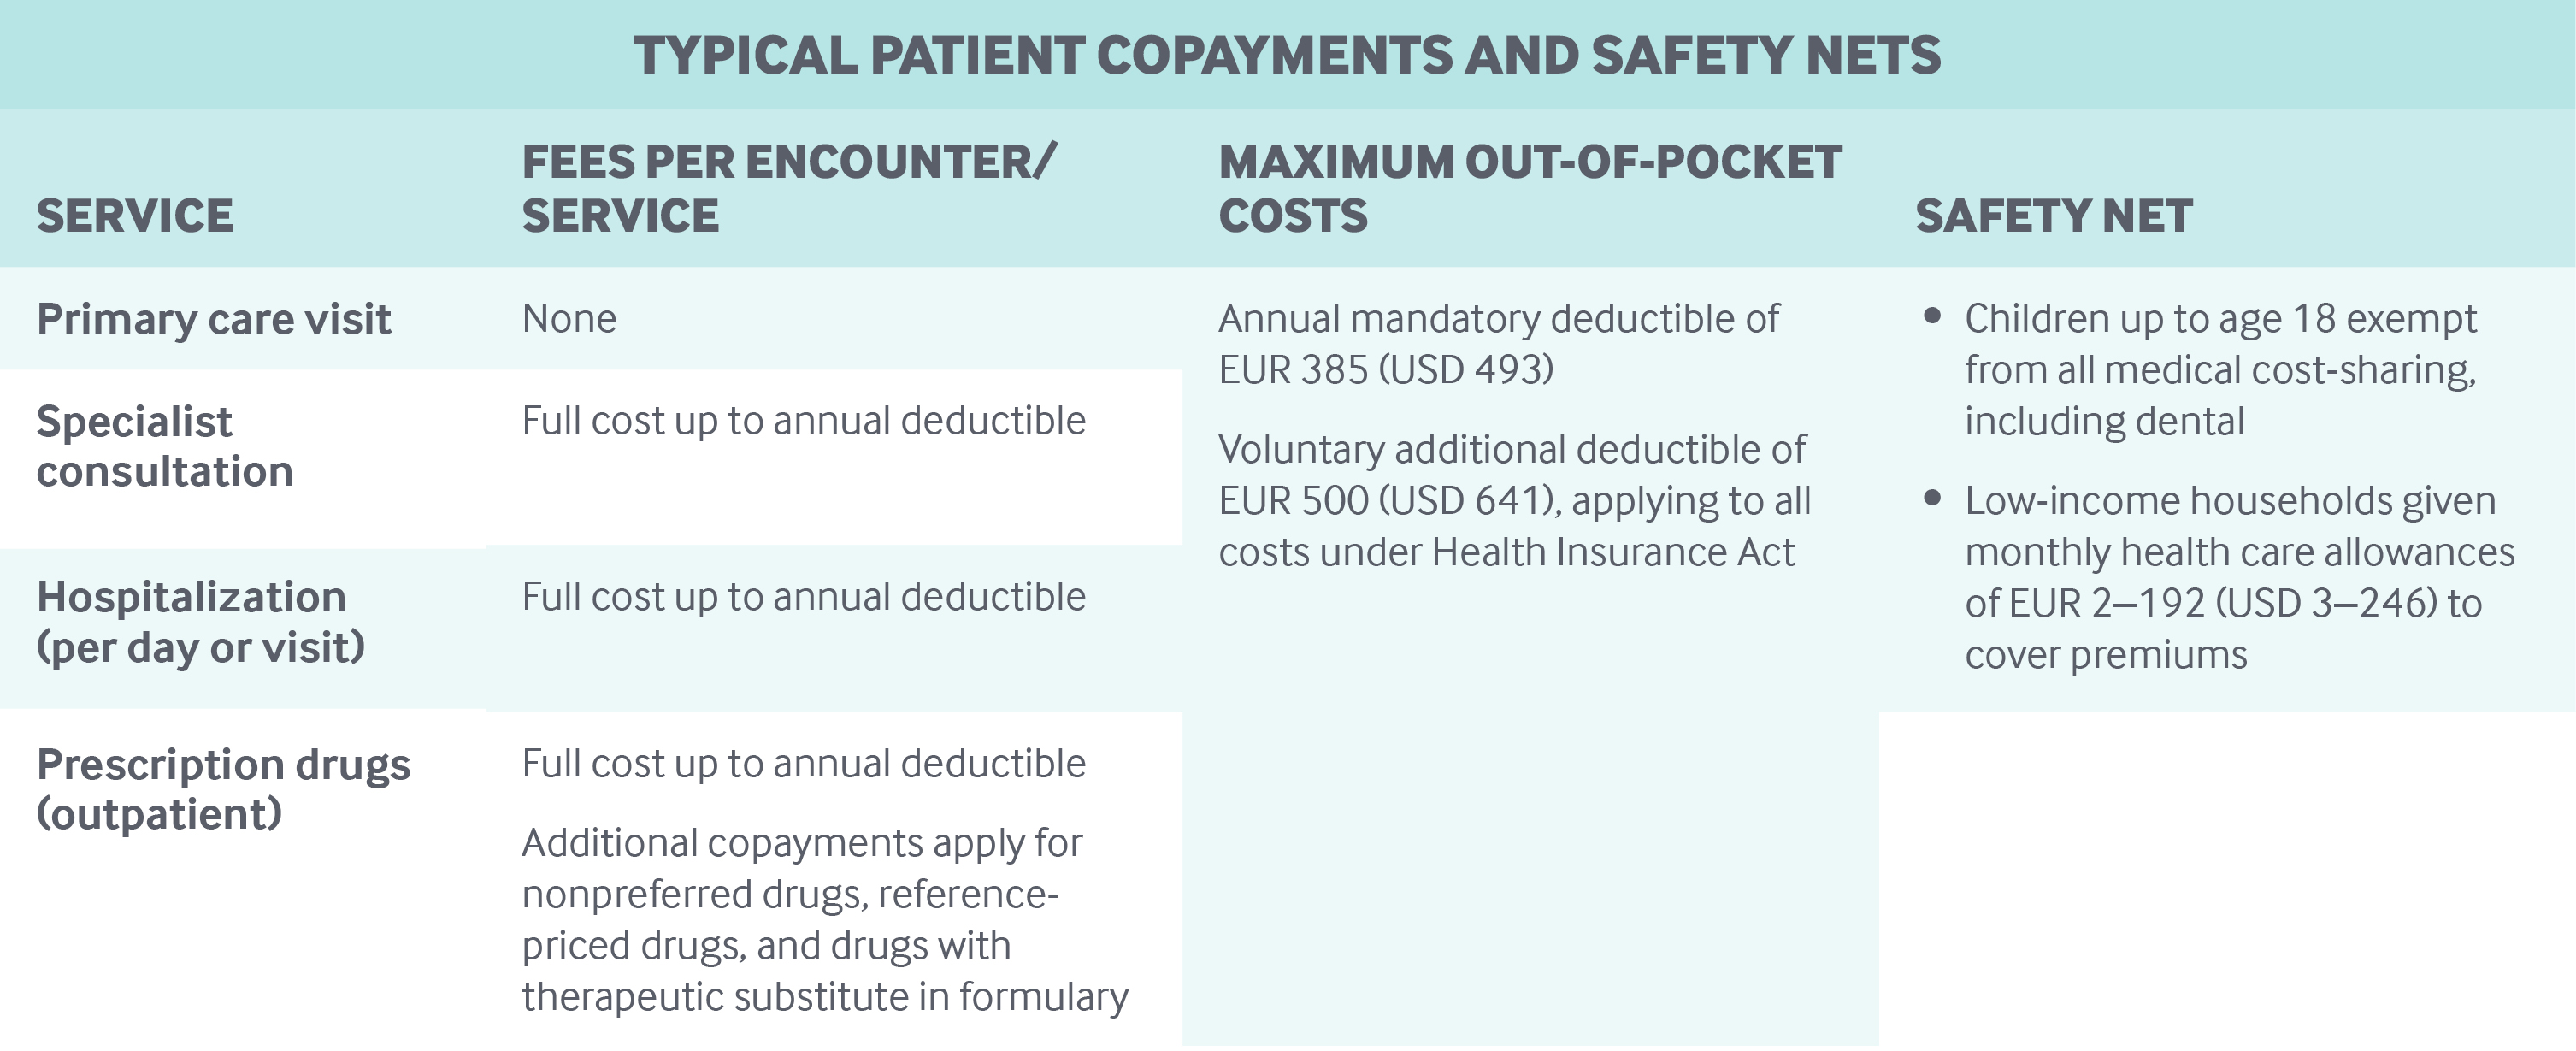 Typical Patient Copayments and Safety Nets Netherlands